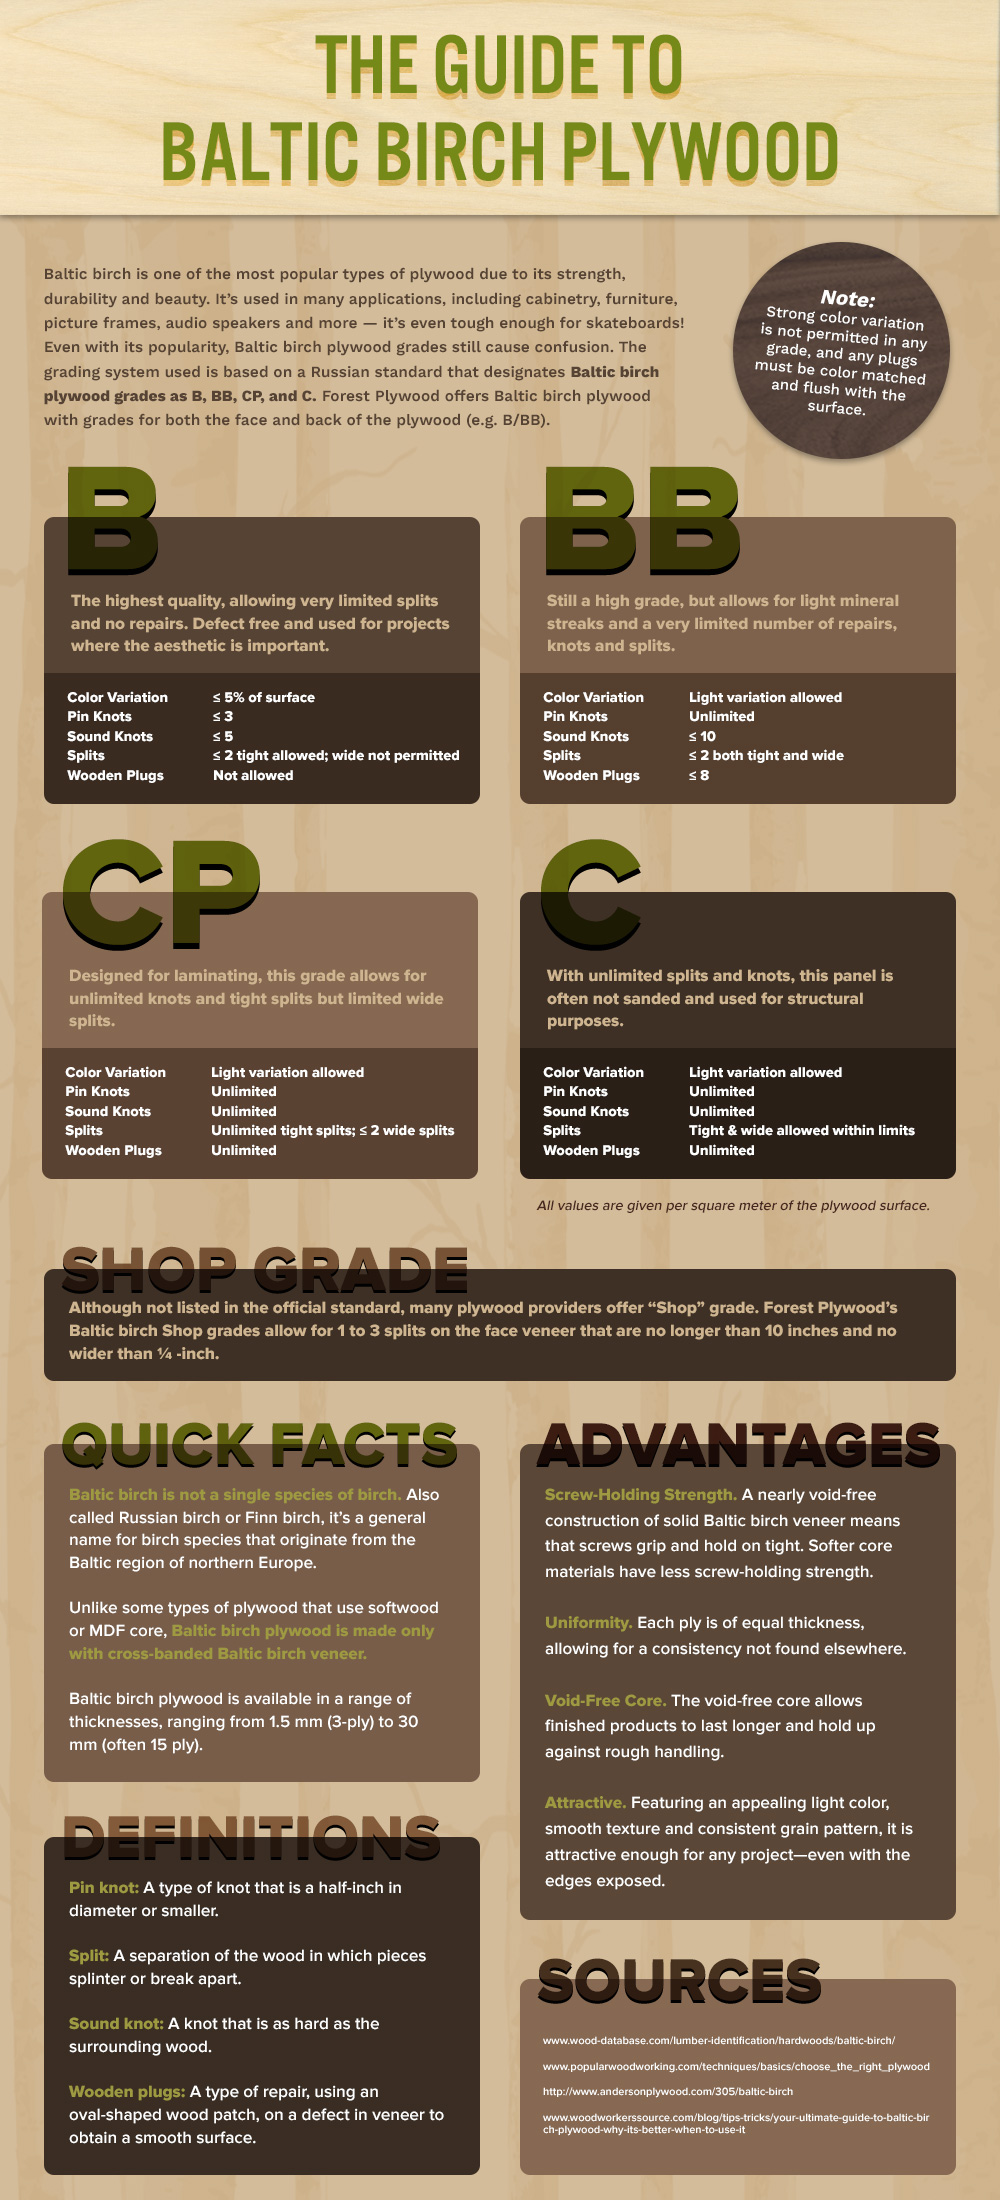 Infographic guide to baltic birch plywood describing each grade, B, BB, C and CP.